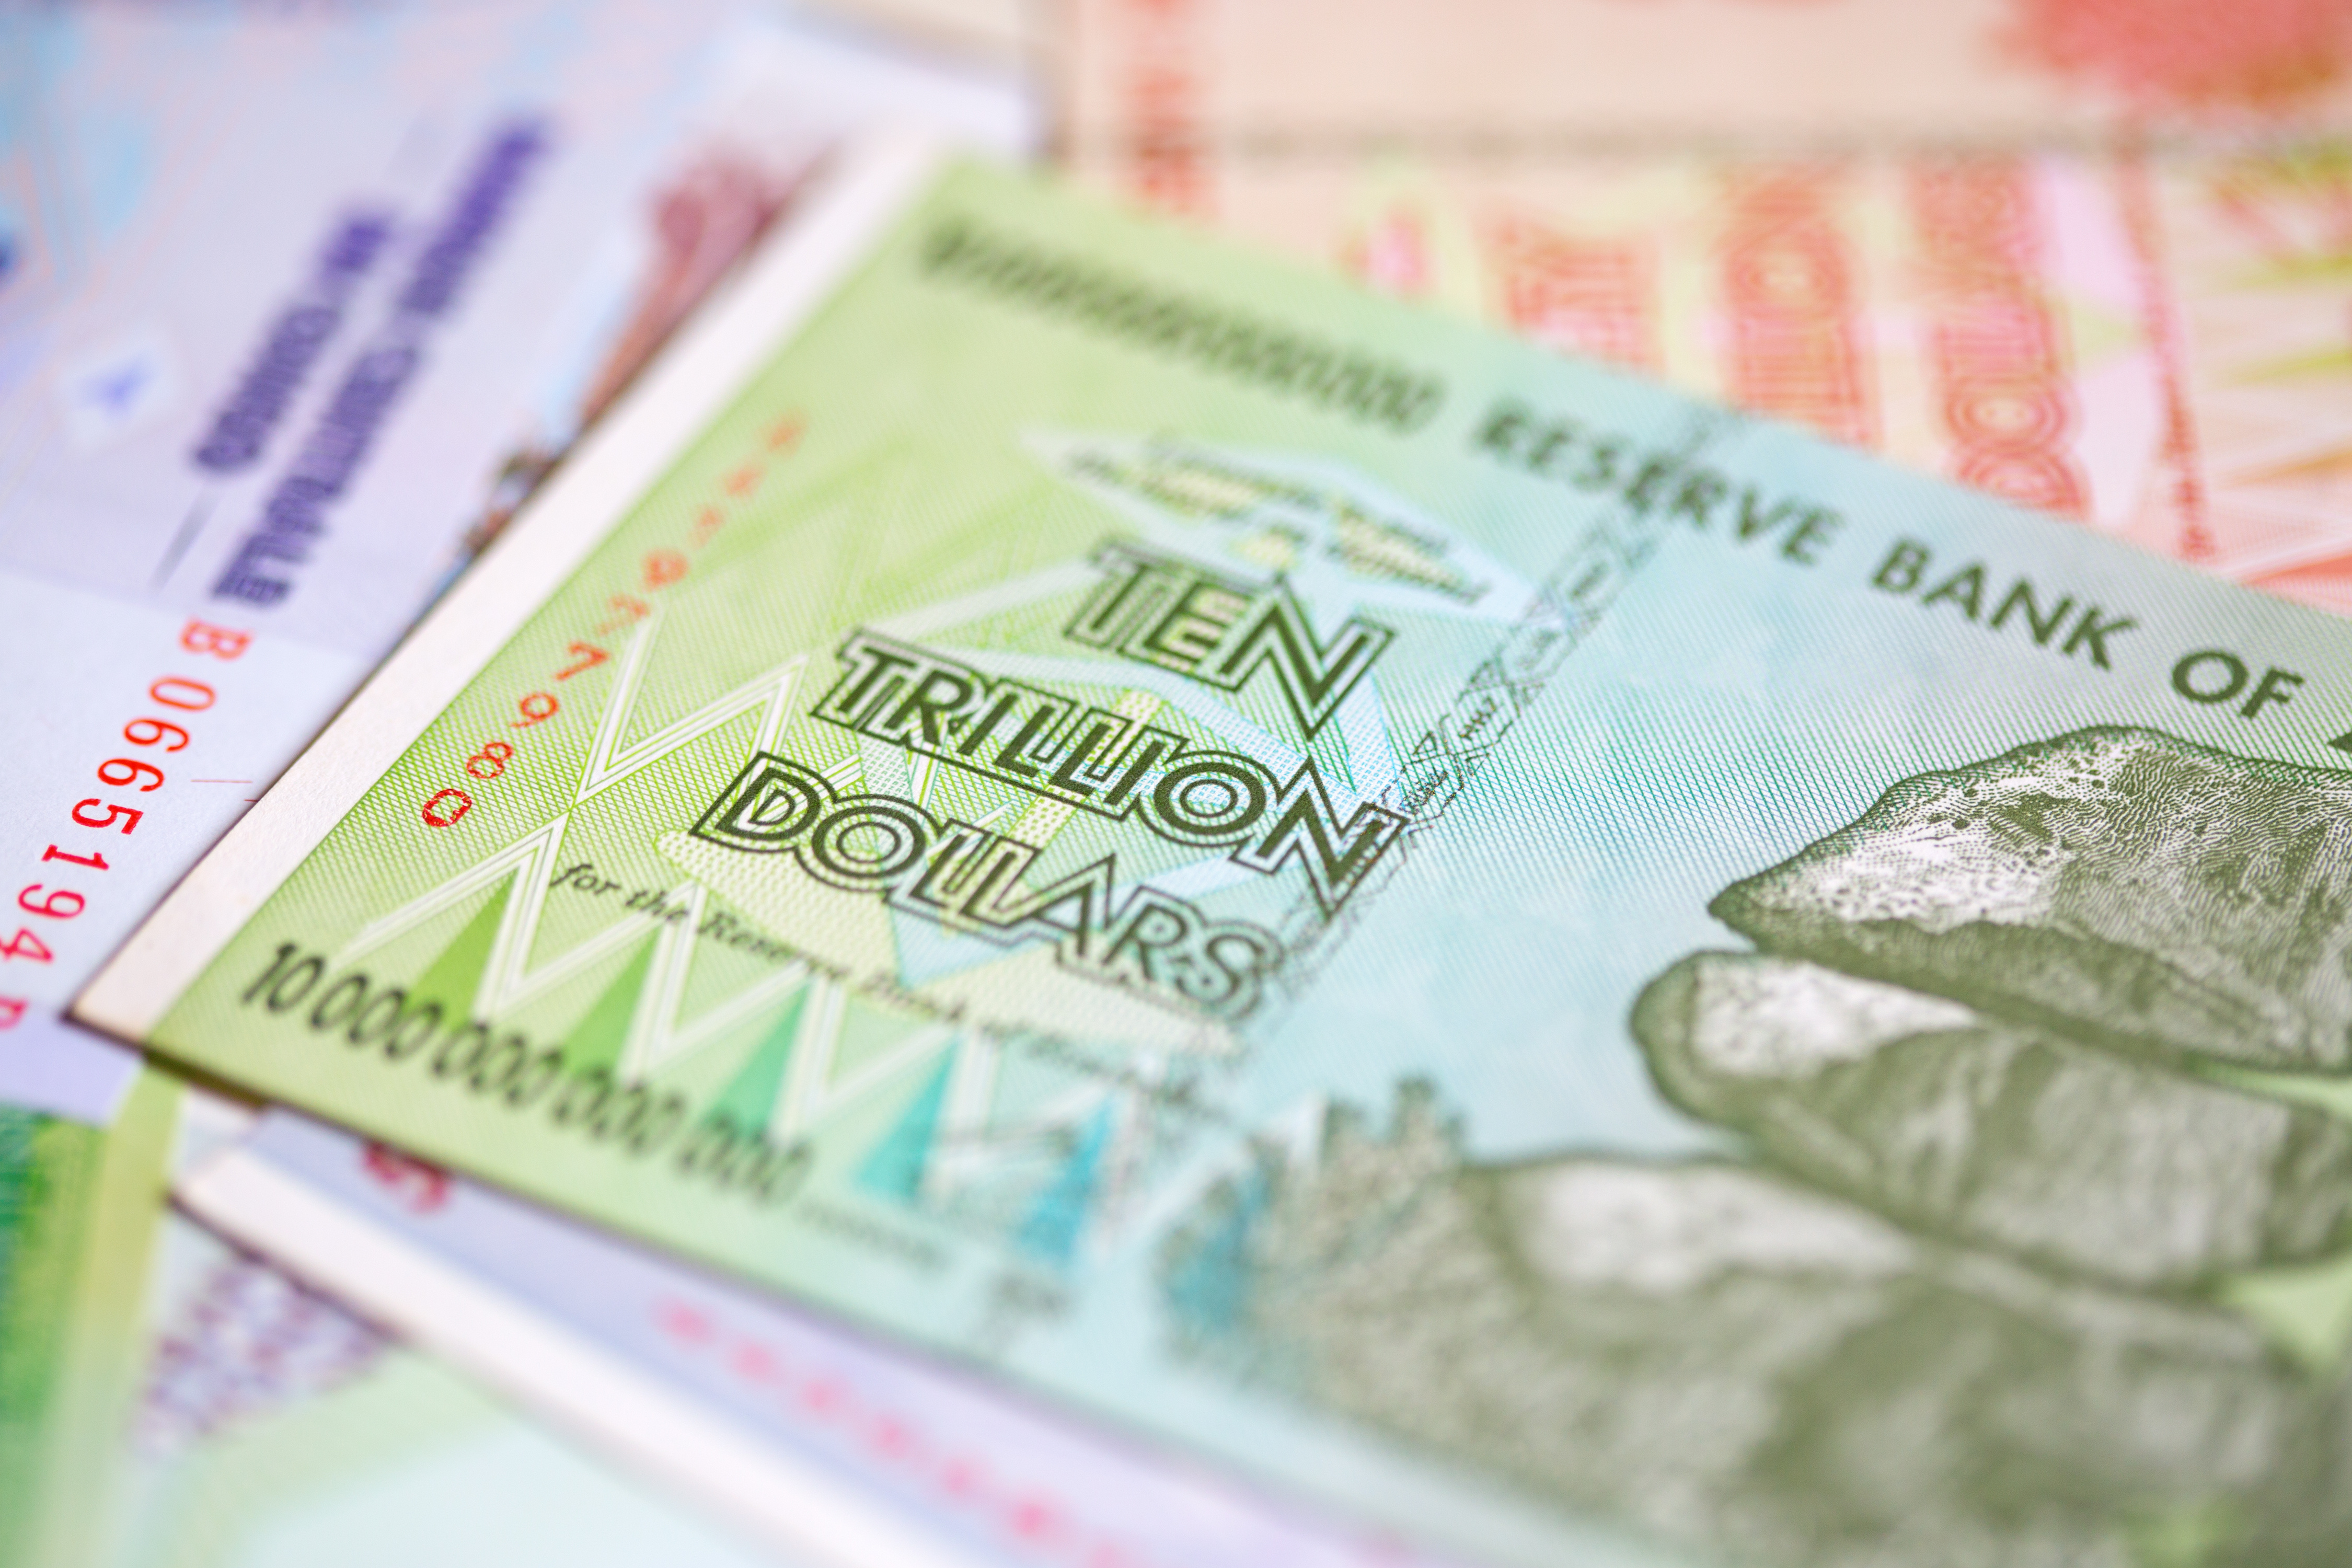 Foreign currency exchange: What to do with unspent cash at